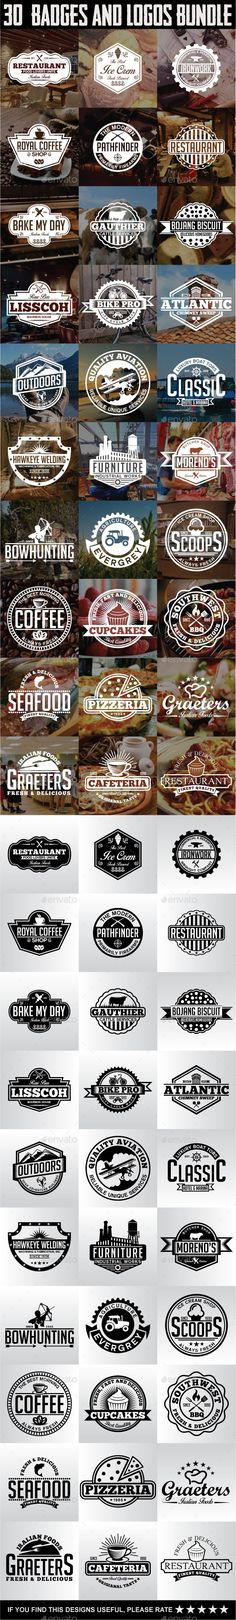 30 Badges and Logos Bundle Template #design Download: http://graphicriver.net/item/30-badges-and-logos-bundle/12133954?ref=ksioks